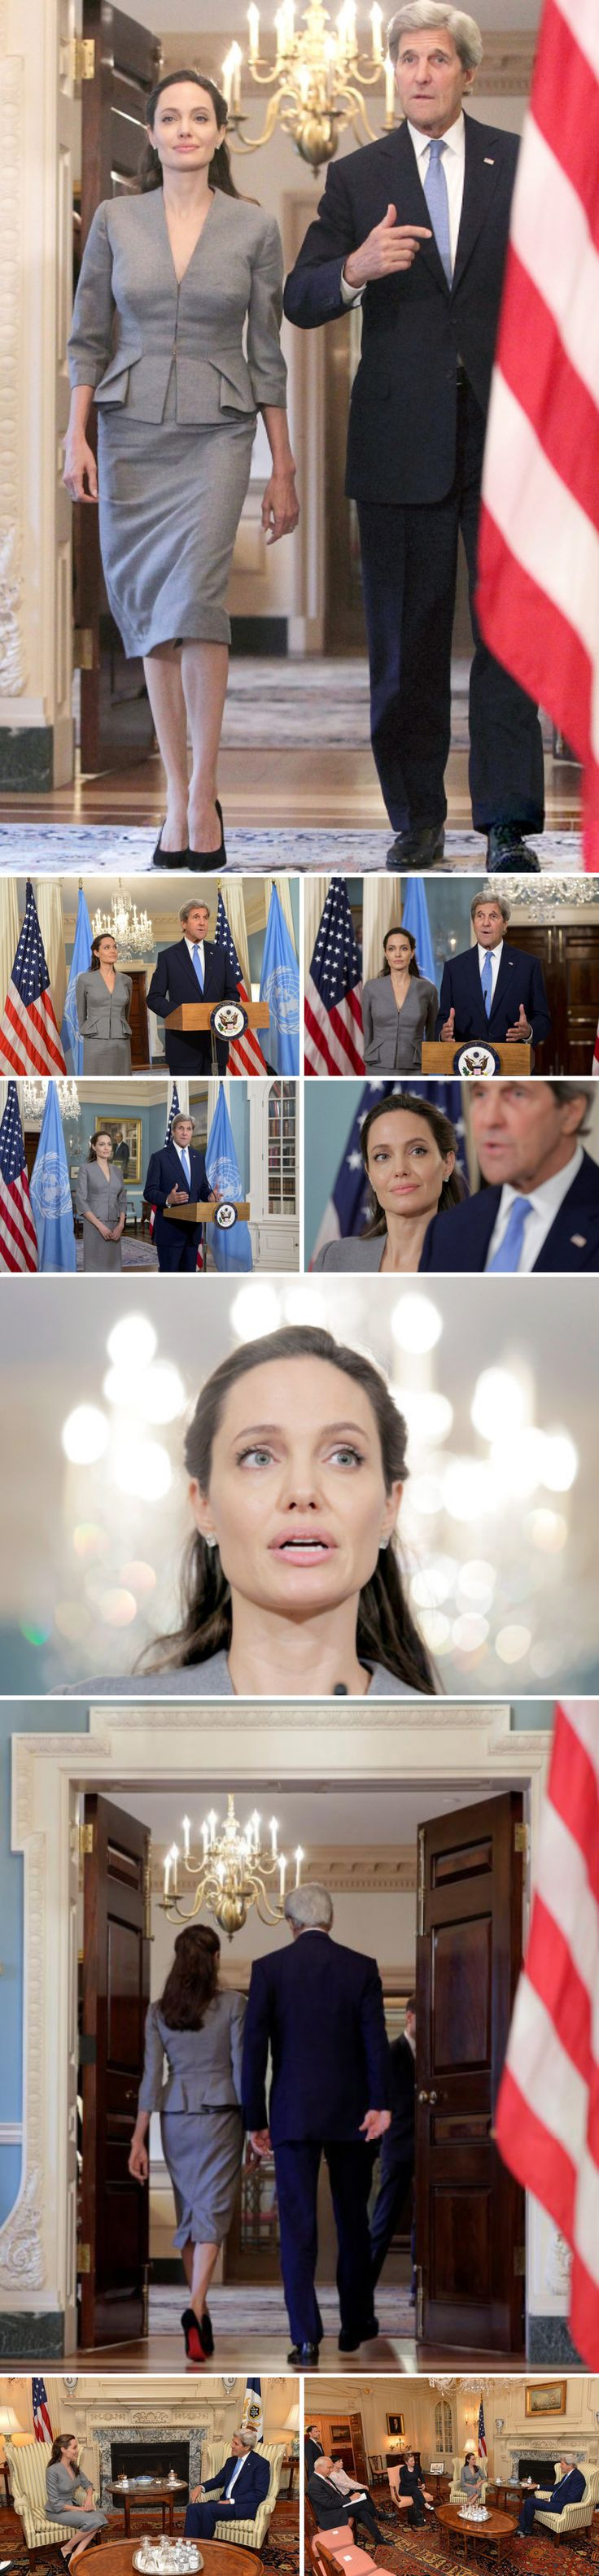 U.S Secretary of State John Kerry and UNHCR Special Envoy Angelina Jolie Pitt at the U.S. Department of State on June 20 to mark World Refugee Day 2016.